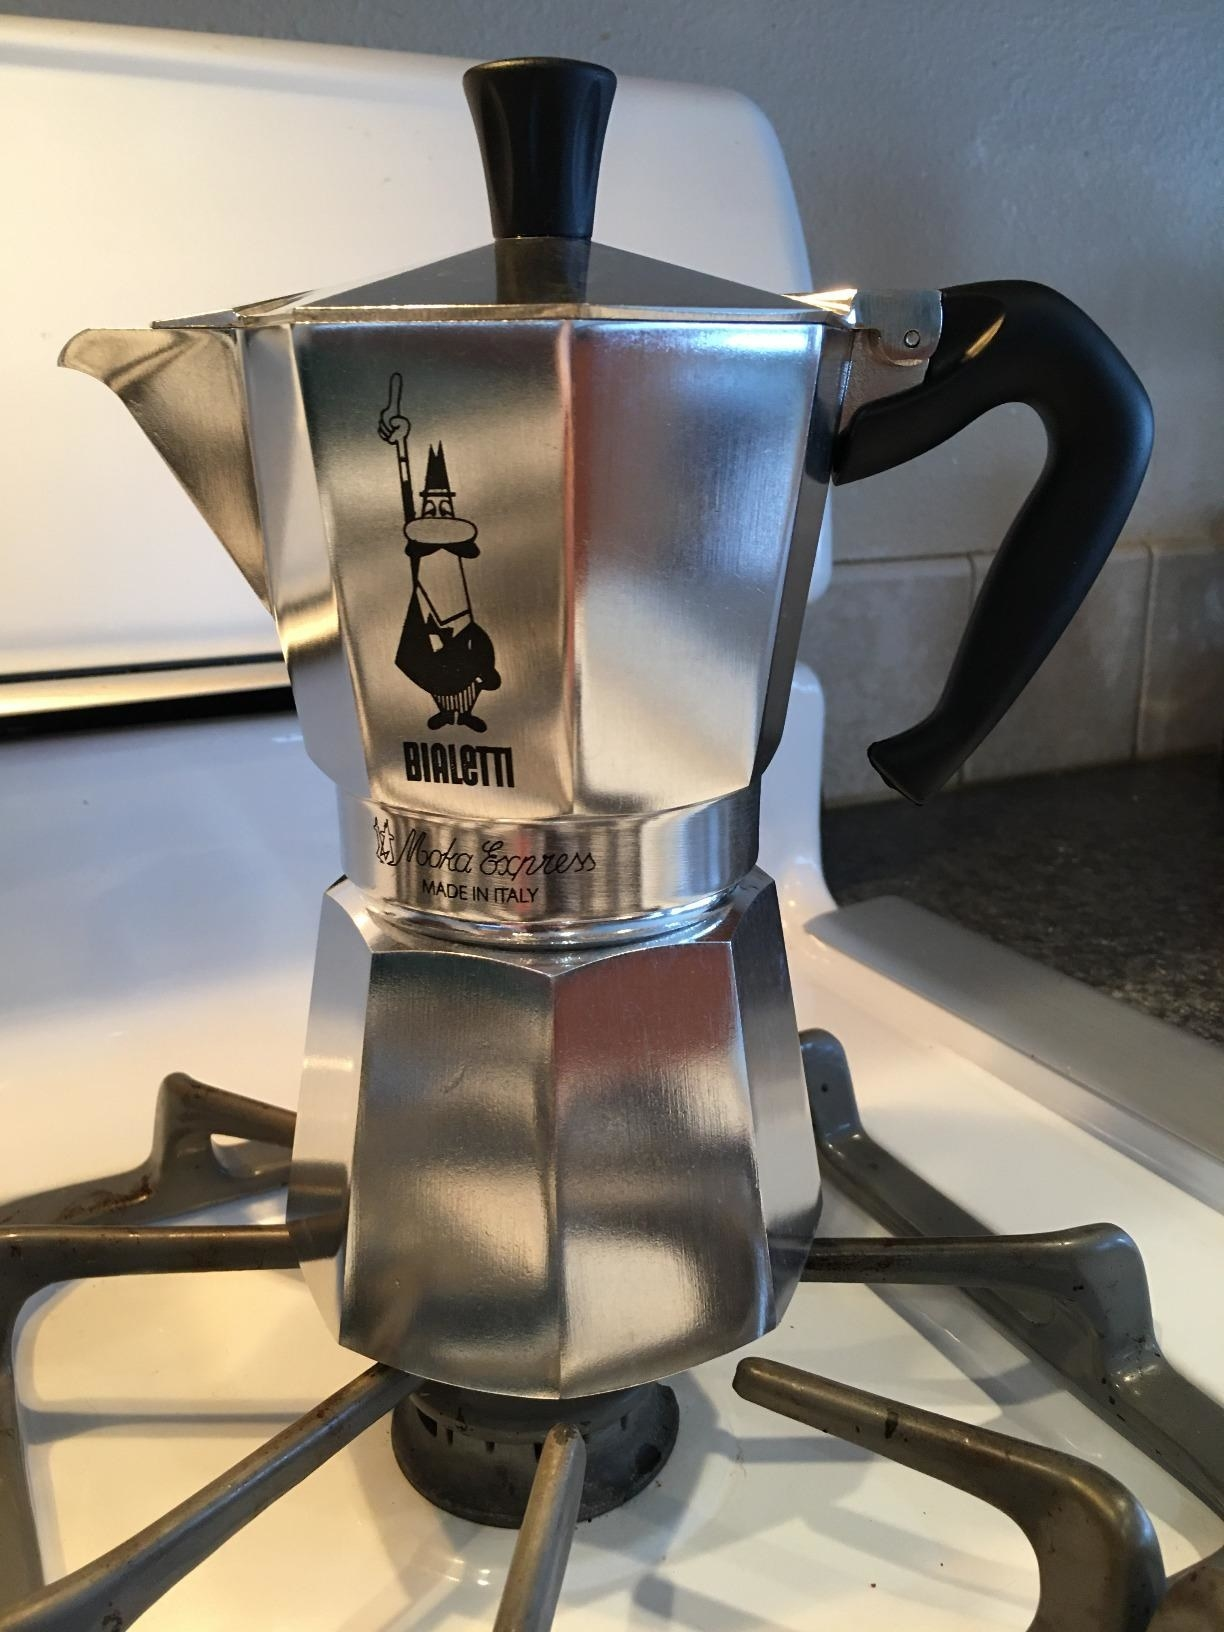 A metal Bialetti coffee brewer sitting on a stovetop burner